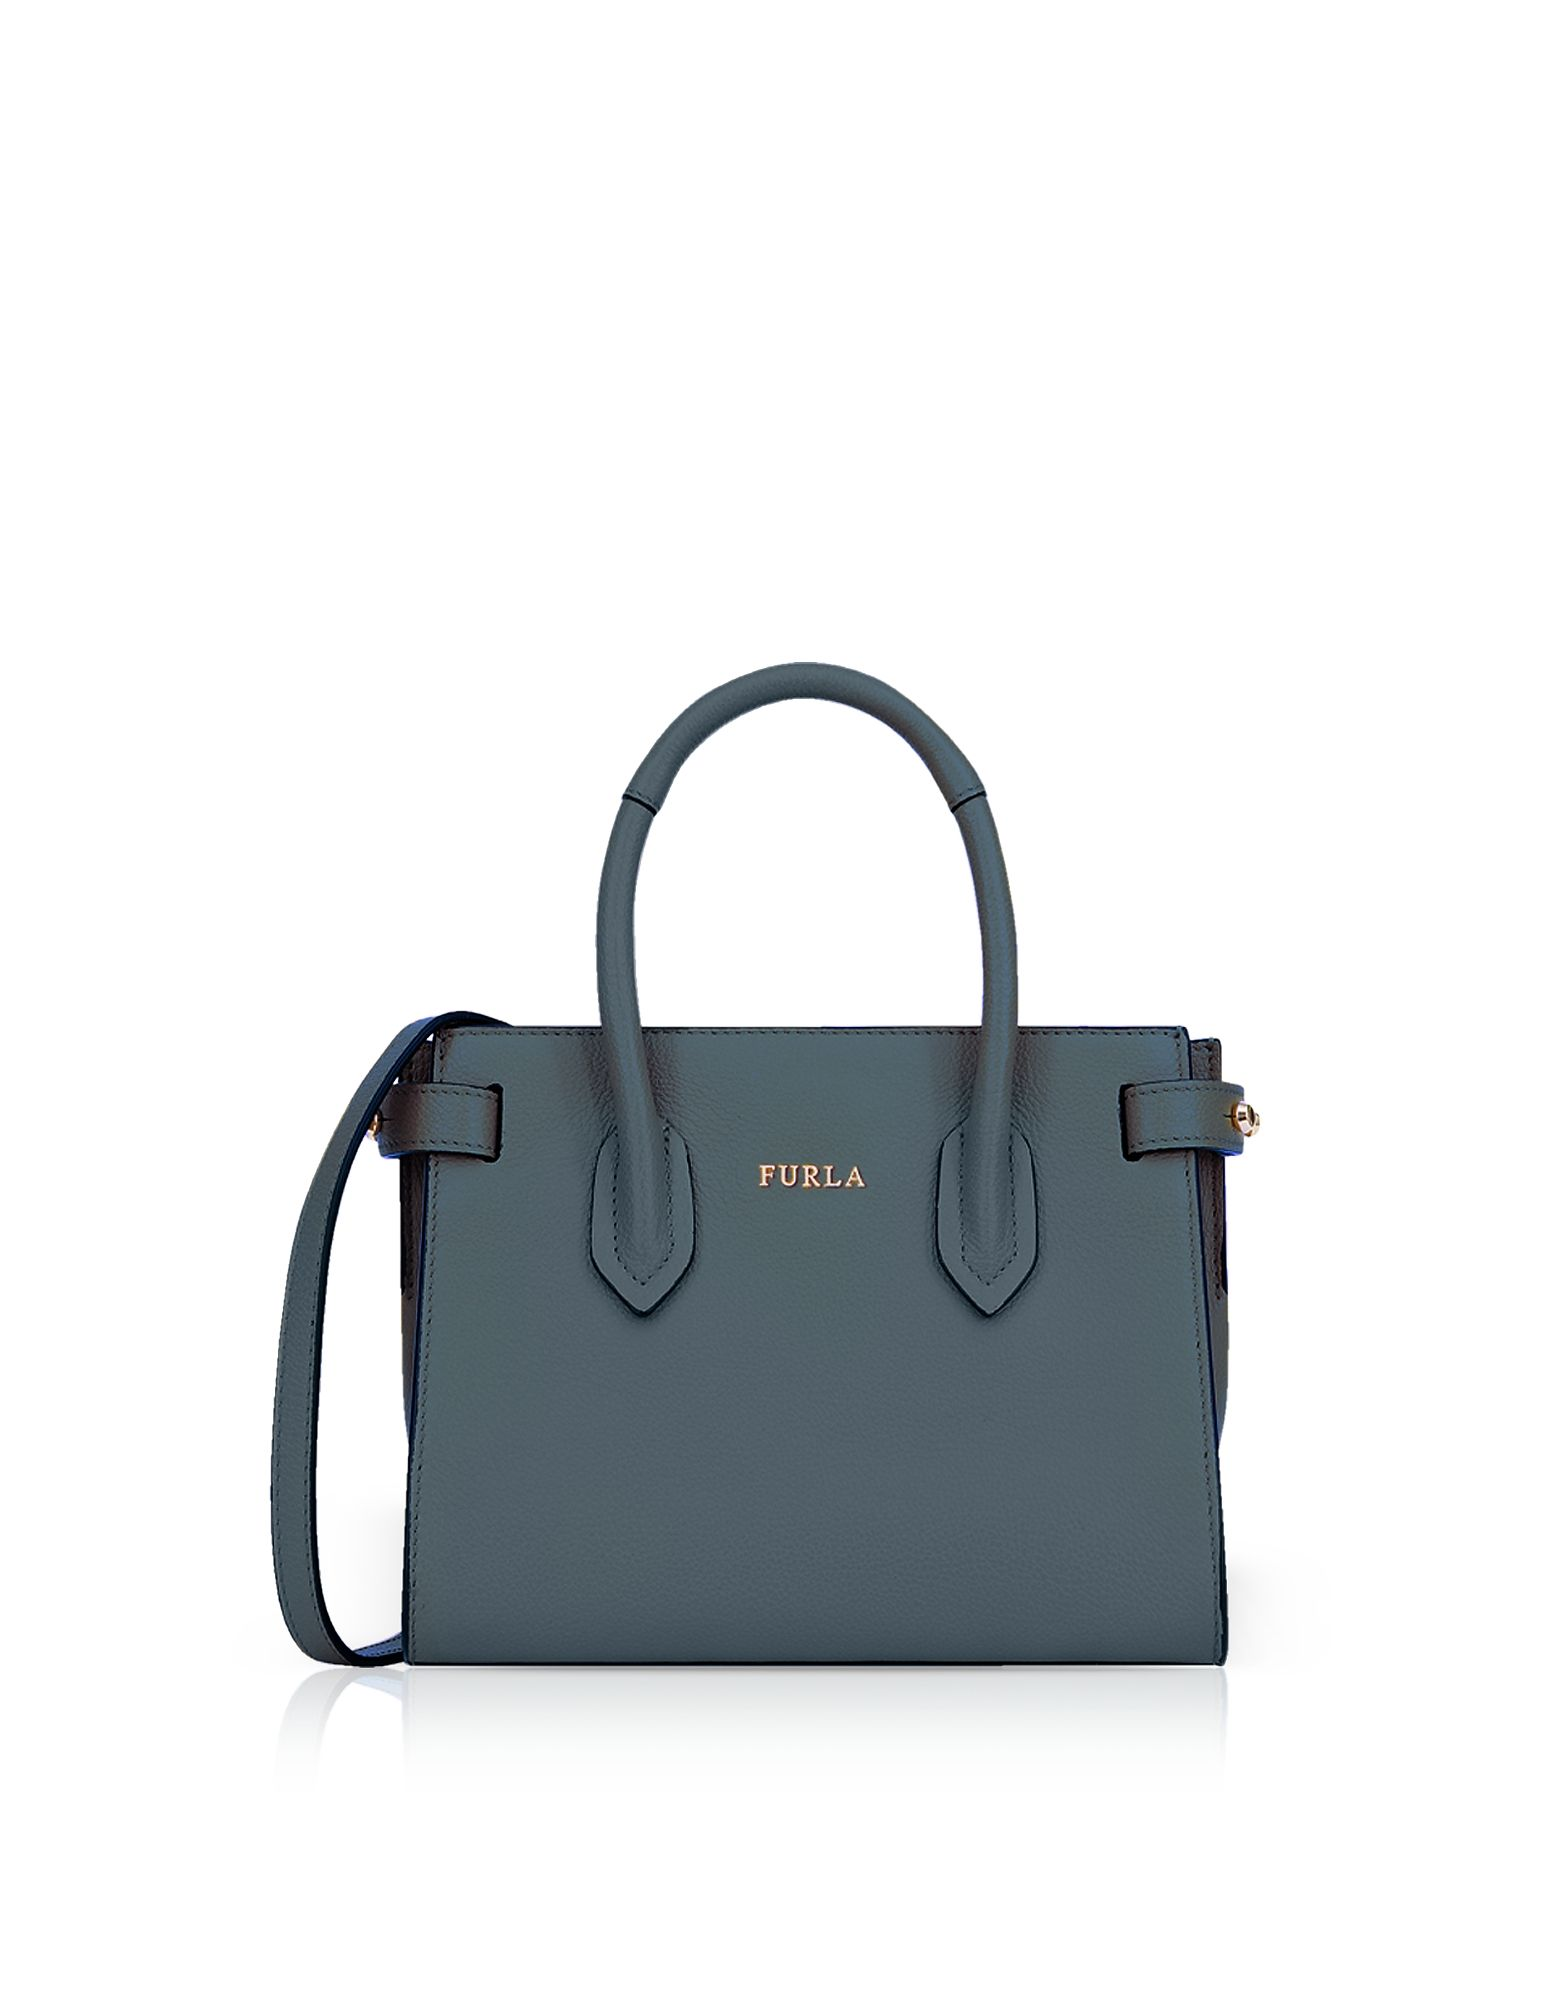 54d73f8c2f1 FURLA PIN MINI TOTE BAG W SHOULDER STRAP.  furla  bags  shoulder bags  hand  bags  leather  tote